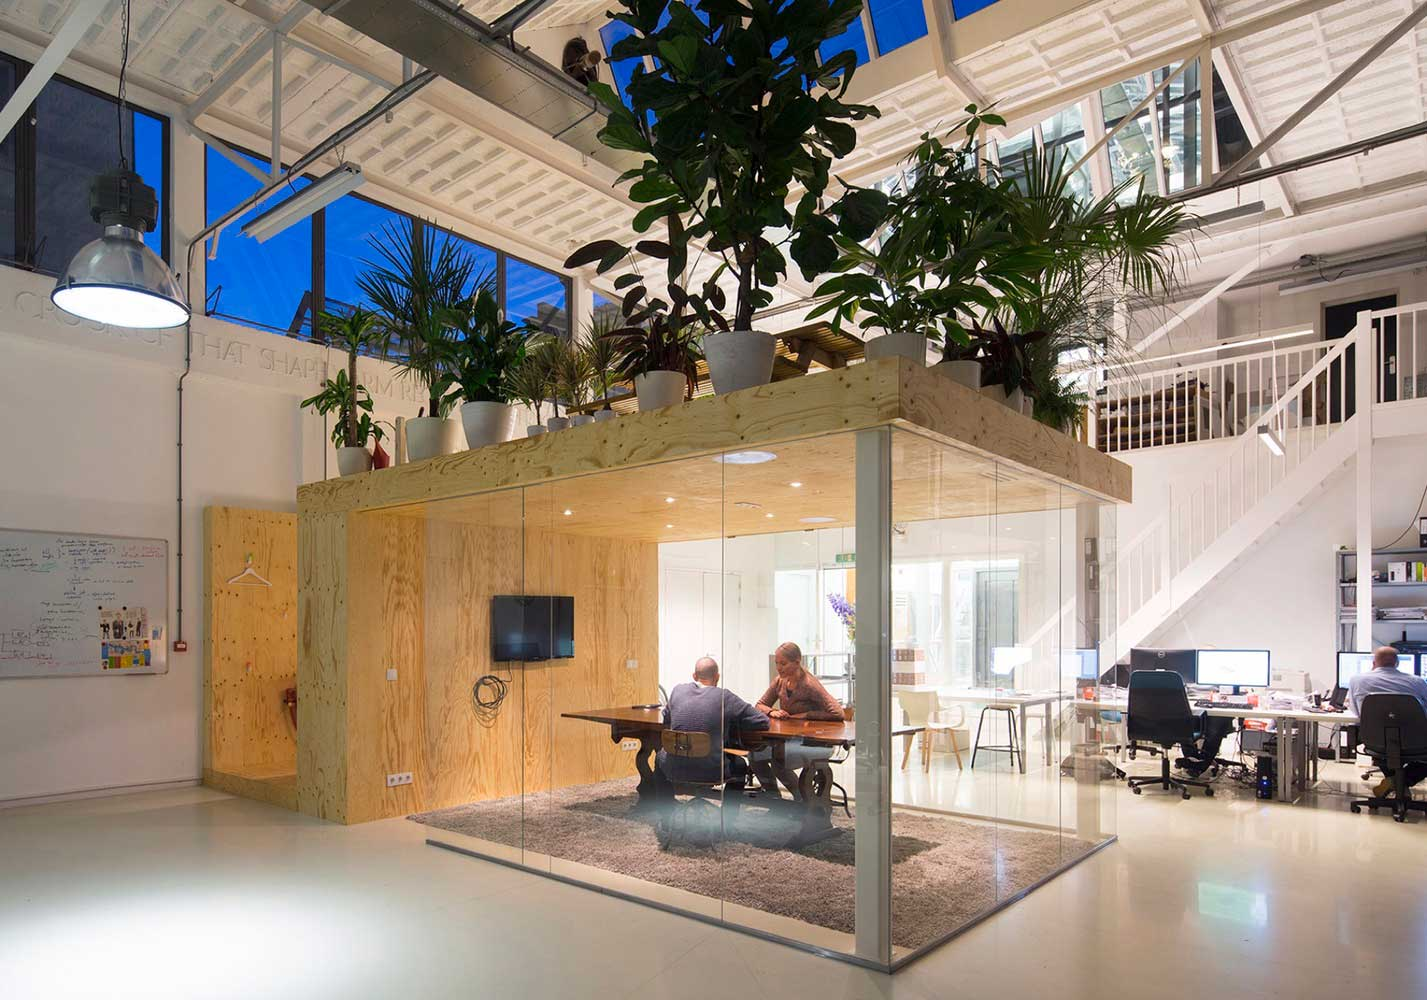 Loft office in rotterdam by jvantspijker yellowtrace for Archi interieur rotterdam